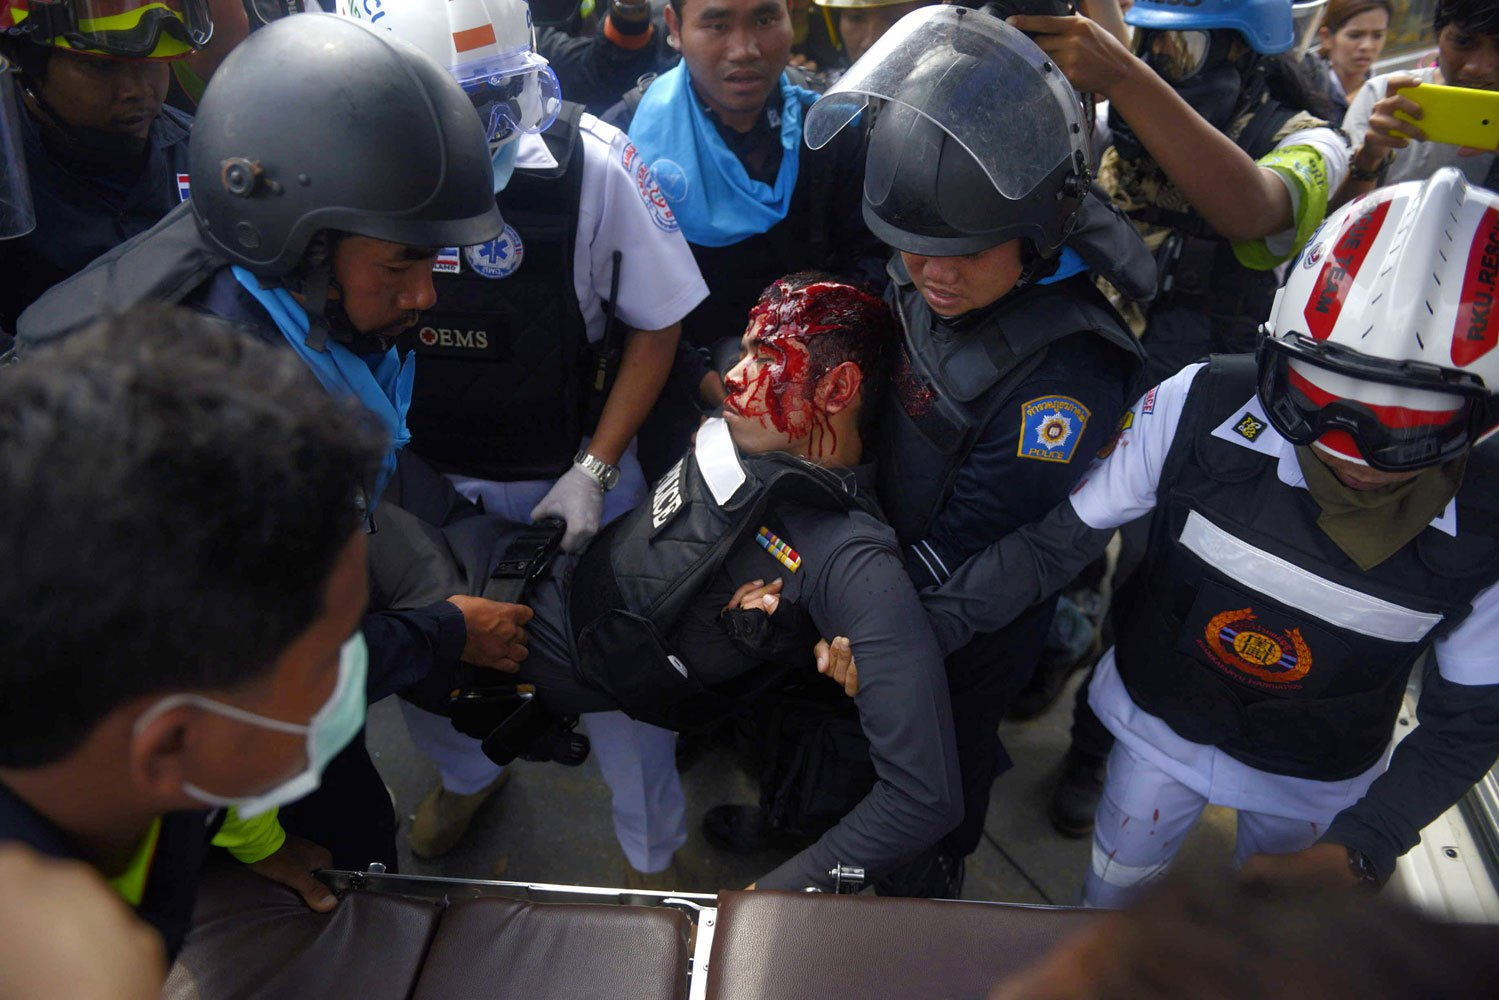 A Police officer is carried to an ambulance after he was shot in the head by sniper fire during a police operation to reclaim the protest site at Phan Fa Bridge in Bangkok, on Feb. 18, 2014.